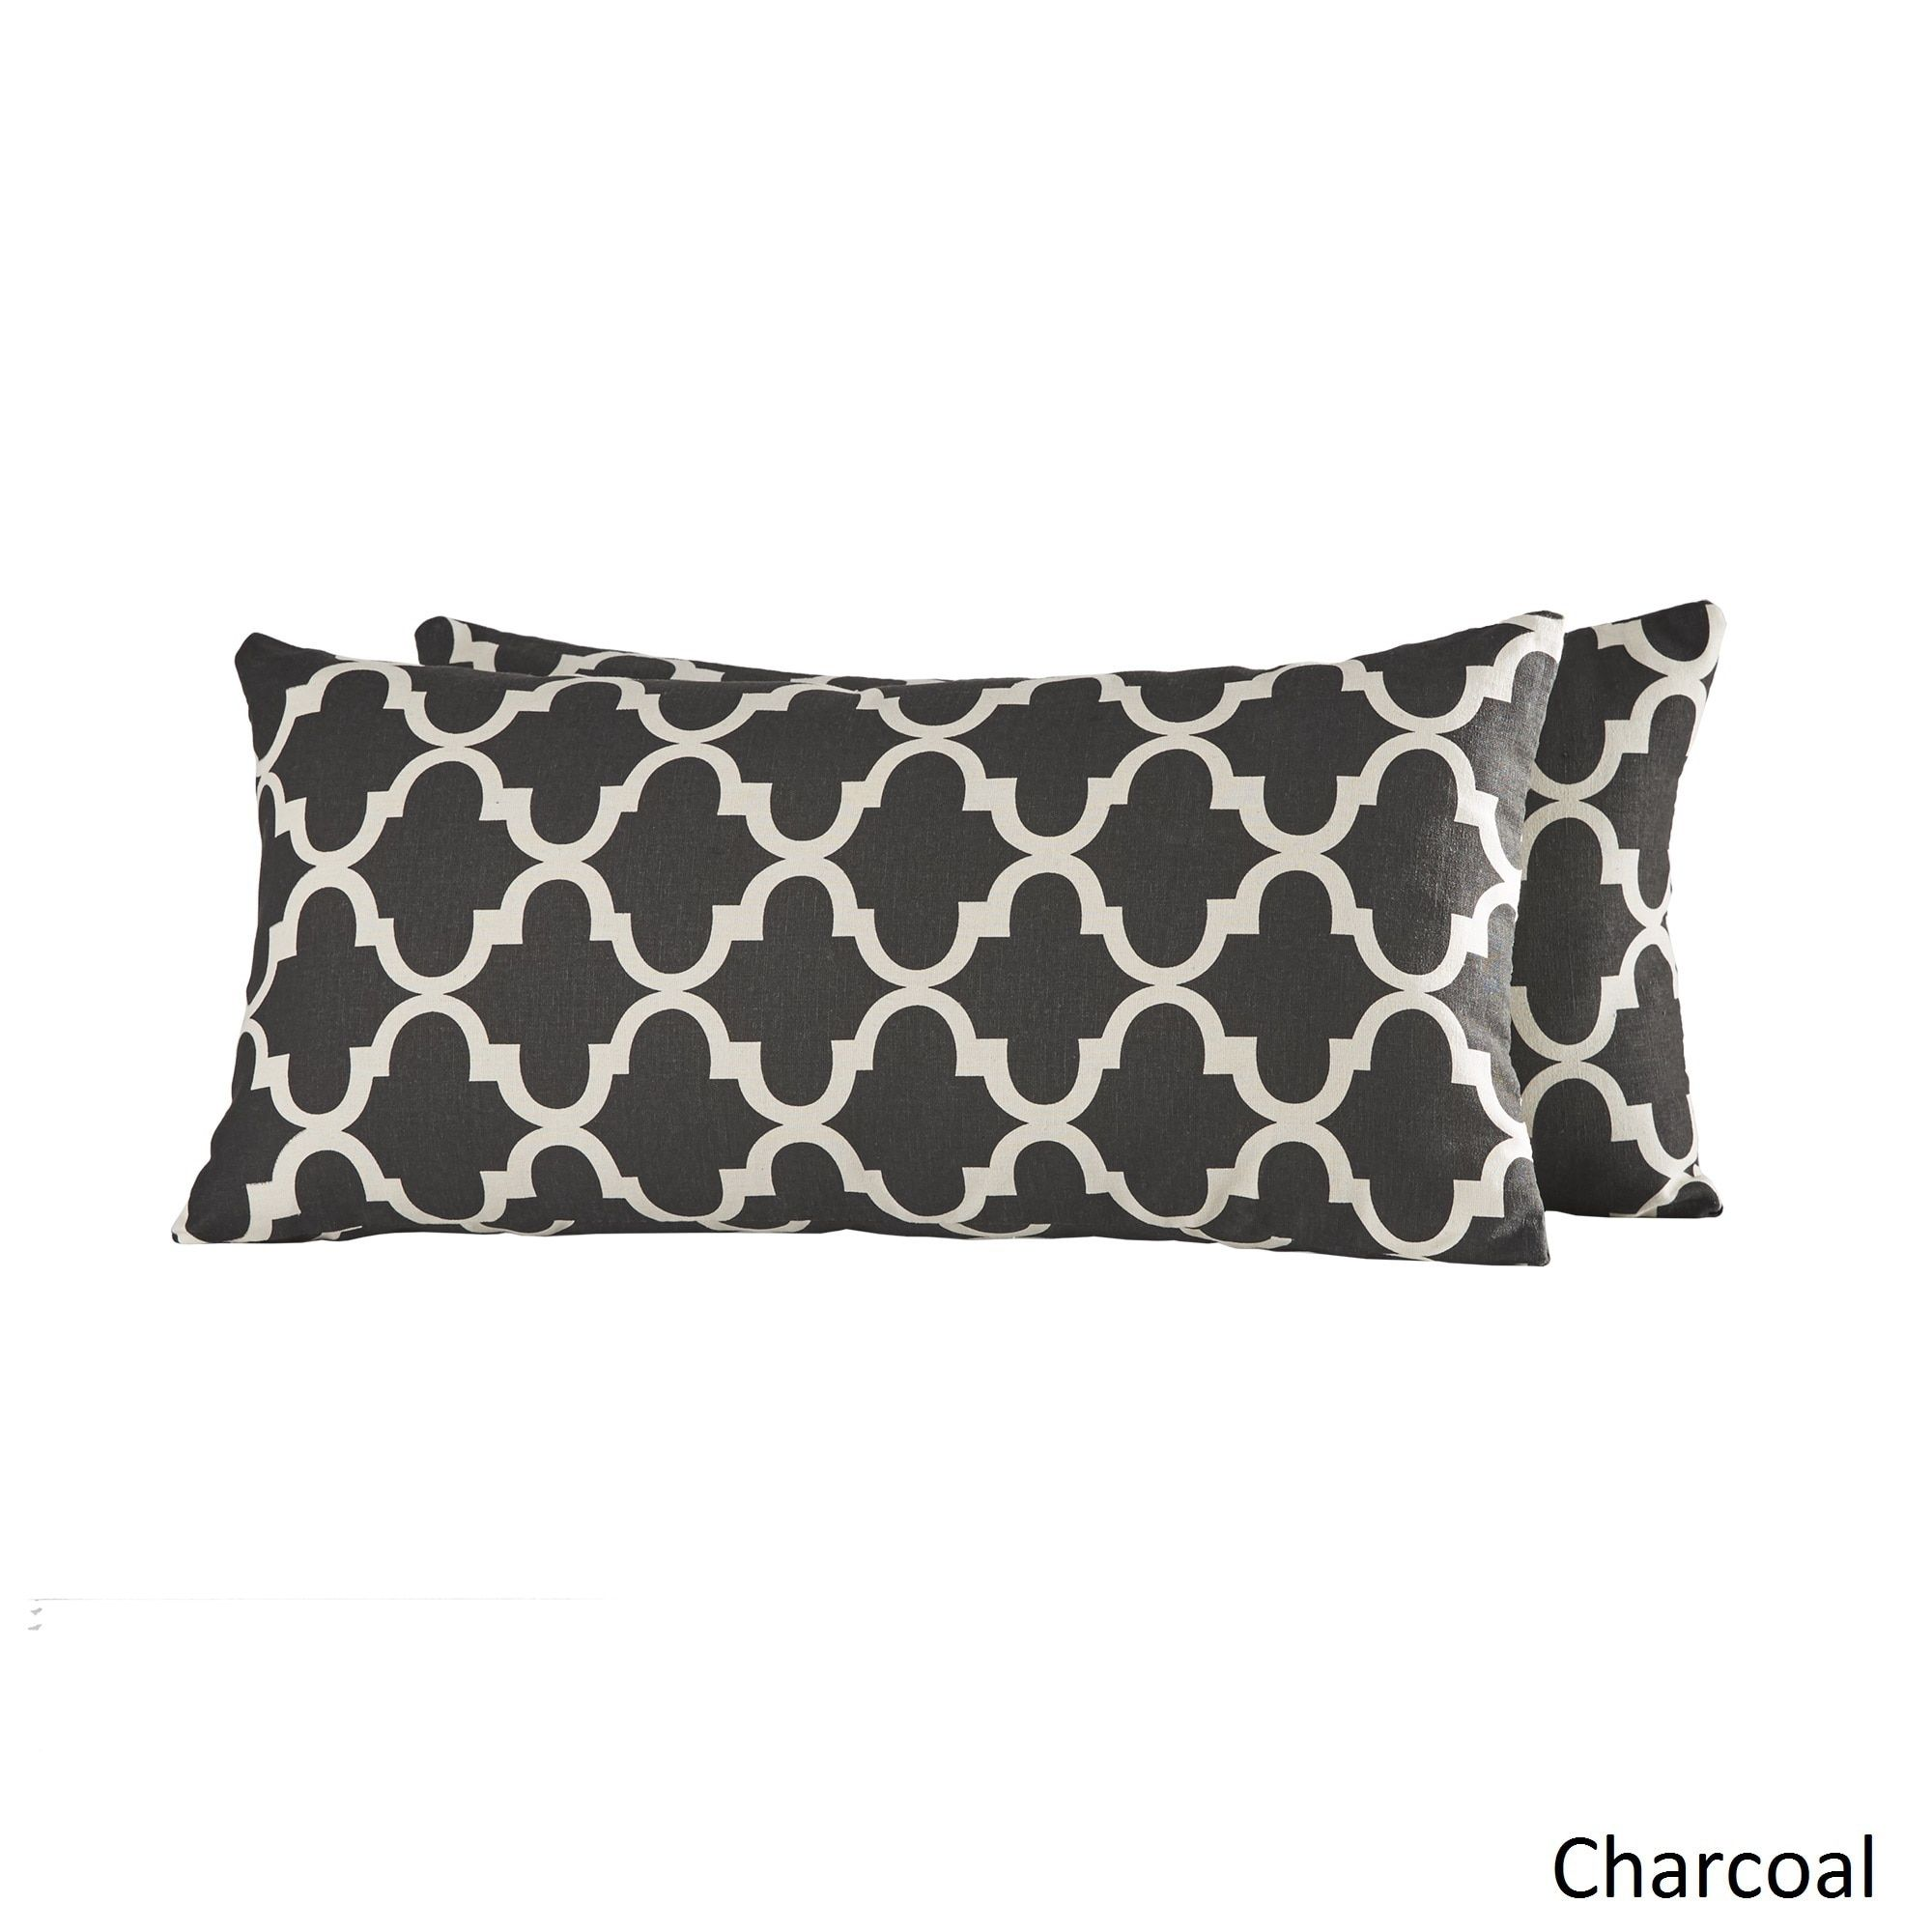 Add an elegant accent to your furniture dcor with this pair of soft throw  pillows boasting a classic Moroccan pattern as a bright standout touch.